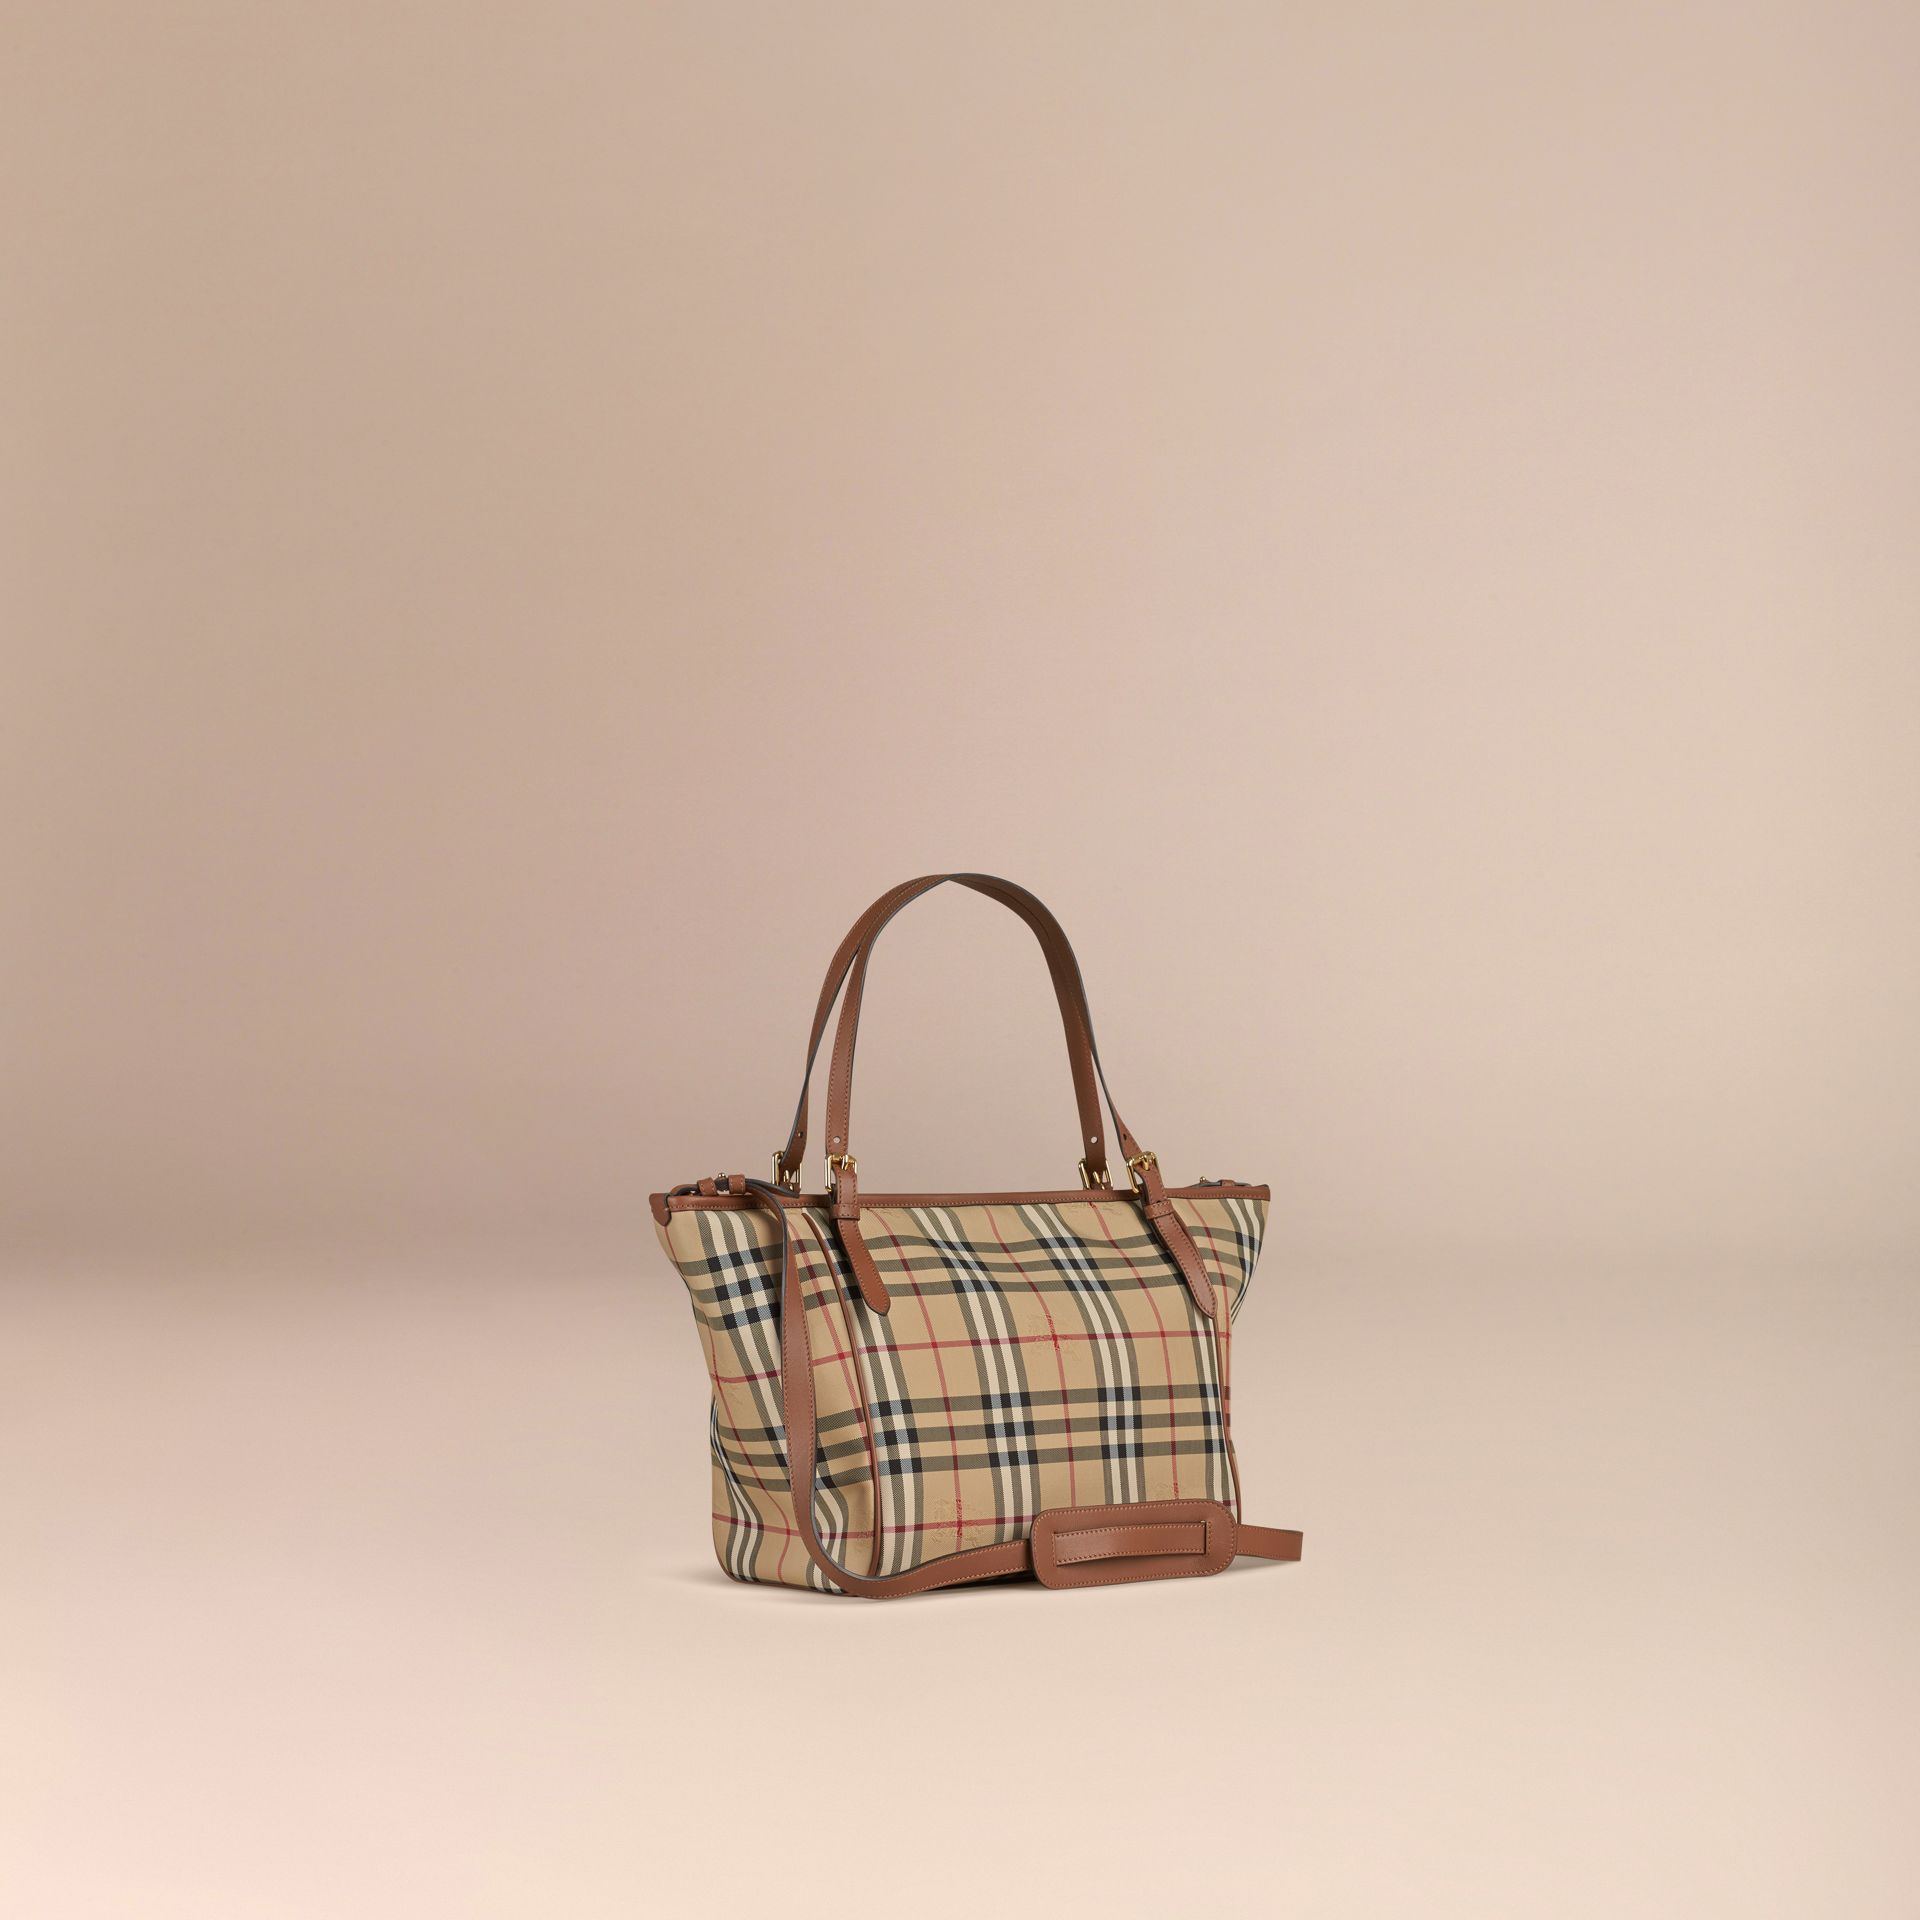 Horseferry Check Baby Changing Tote Bag in Tan | Burberry Canada - gallery image 3